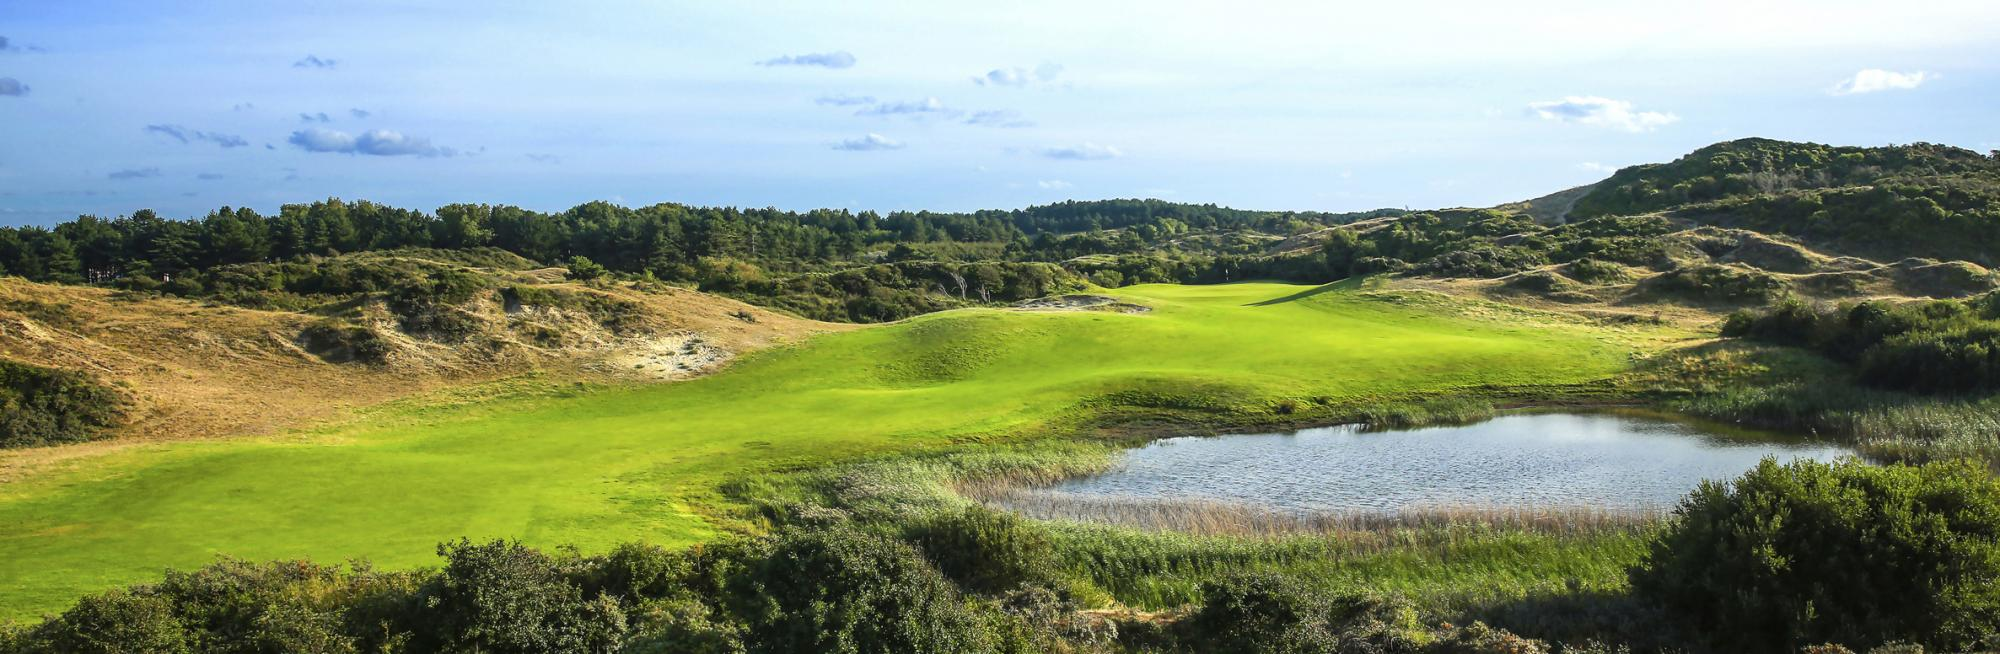 Golf de Belle Dune has lots of the most desirable golf course in Northern France